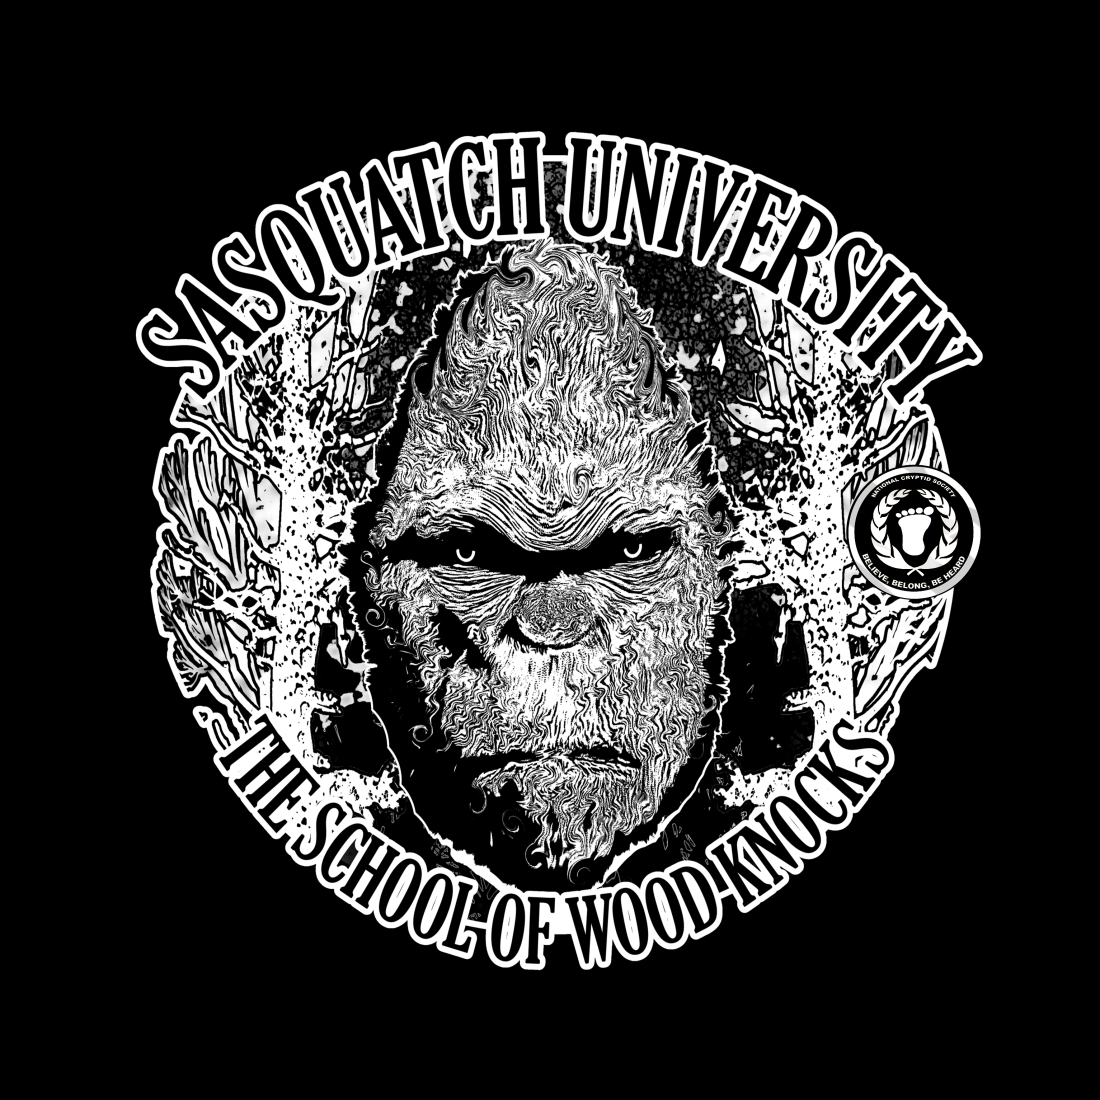 SASQUATCH UNIVERSITY tee